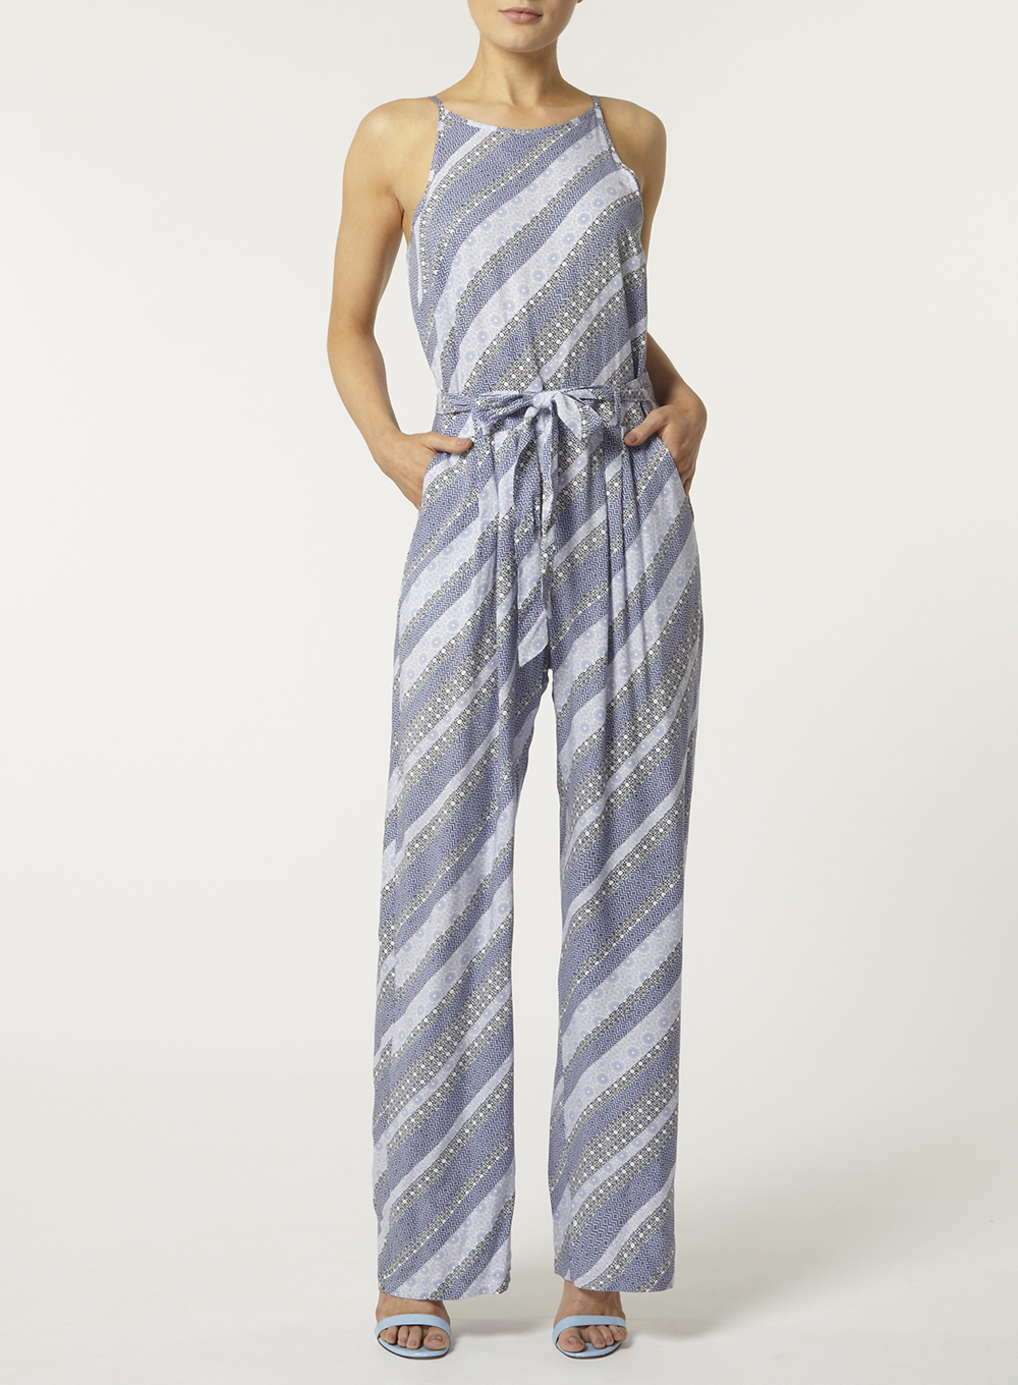 Dgoldthy Perkins  Printed Strappy Jumpsuit 22 bluee Multi